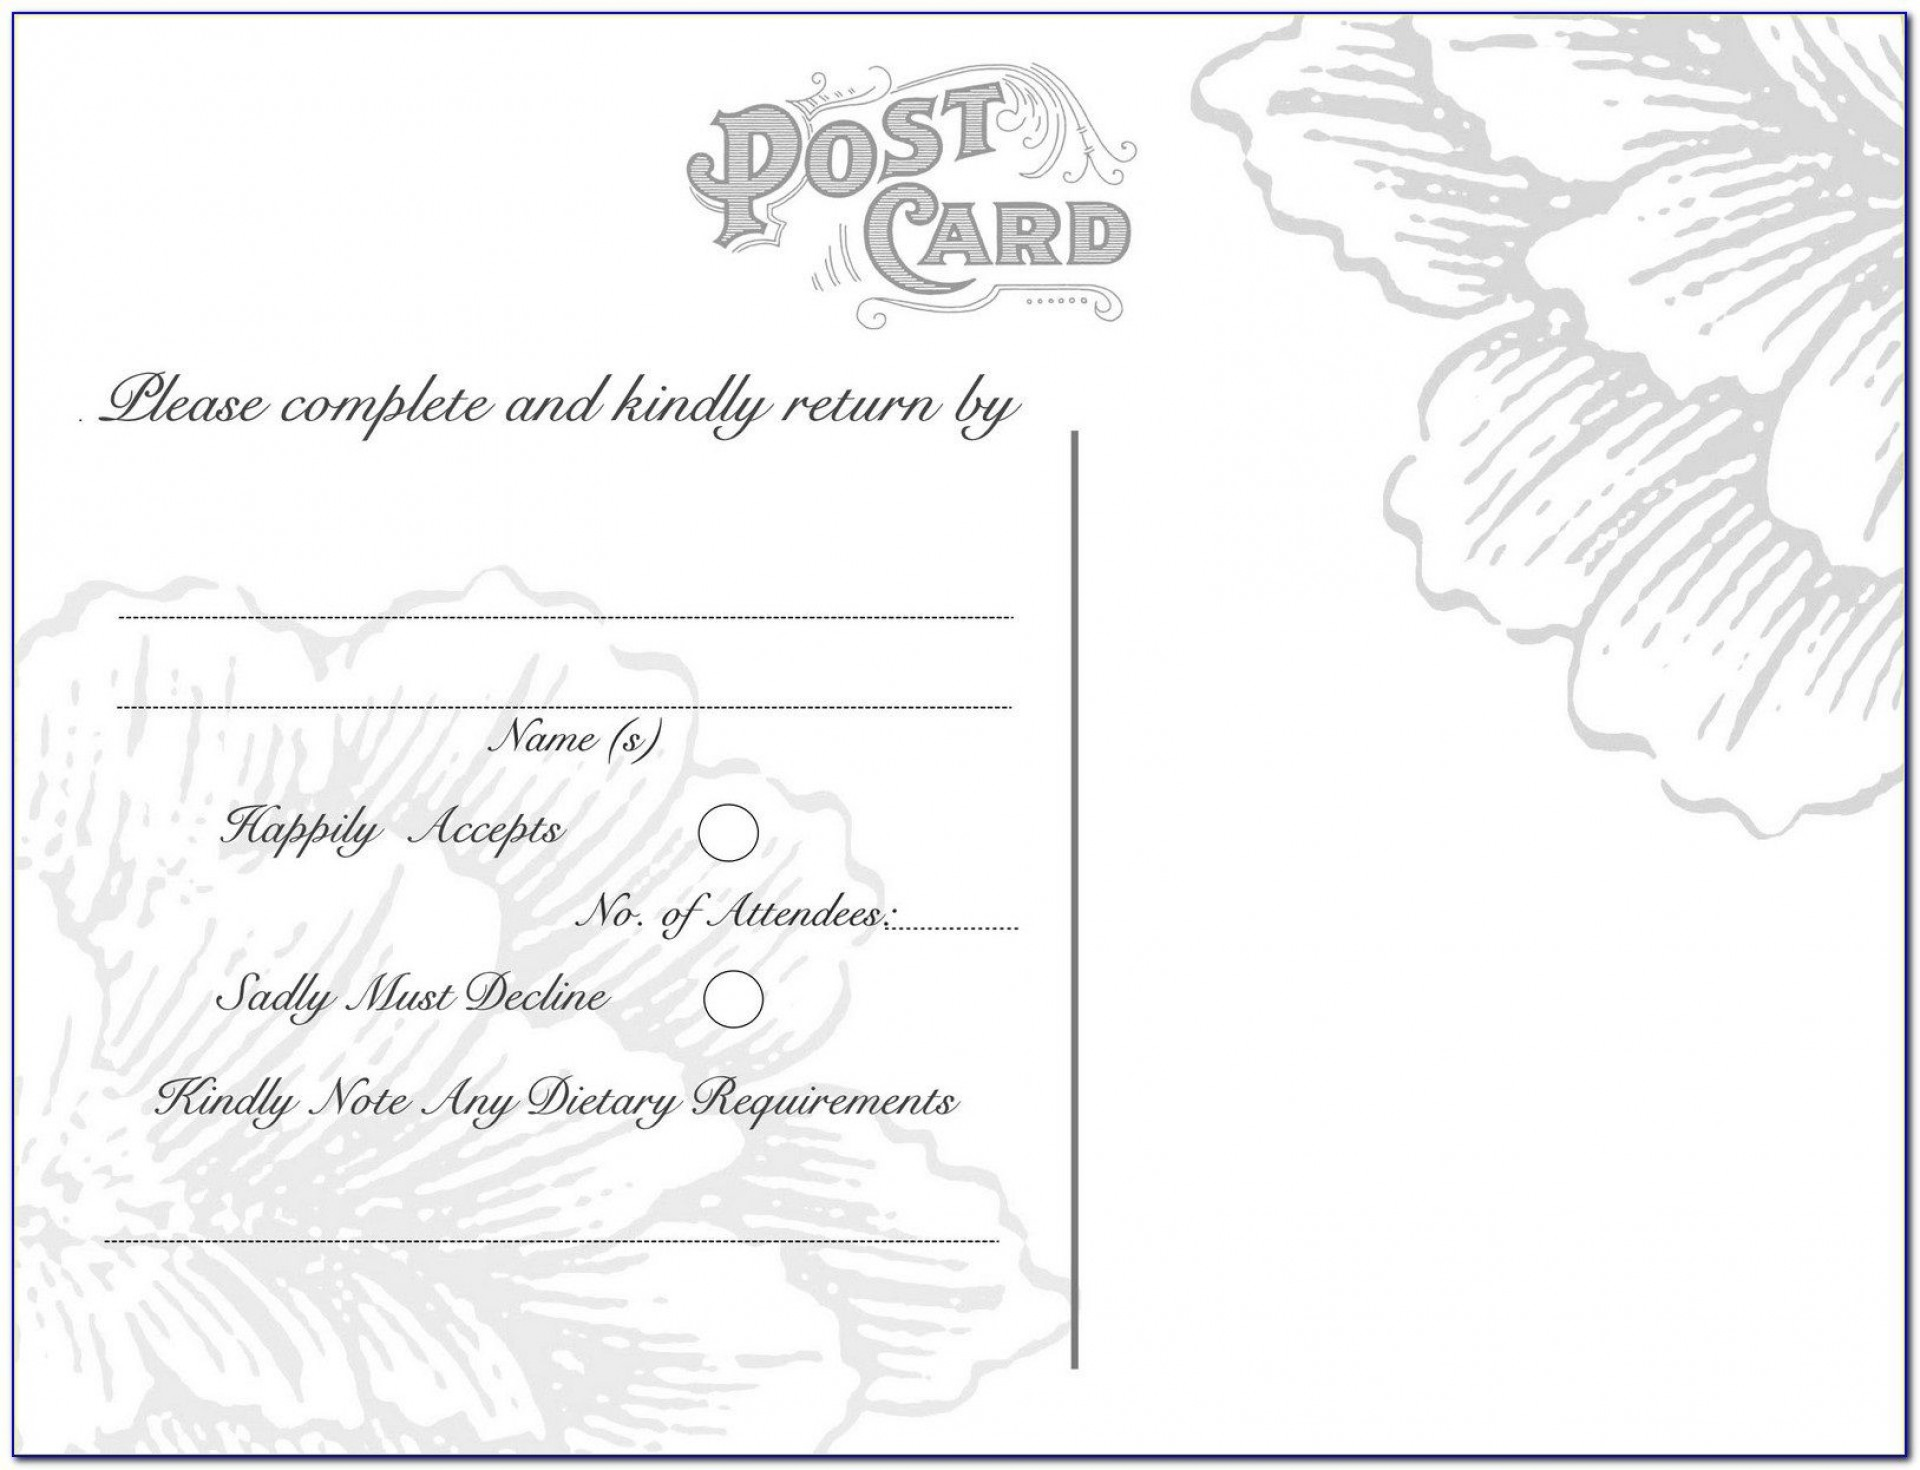 007 Exceptional Rsvp Postcard Template For Word Example 1920